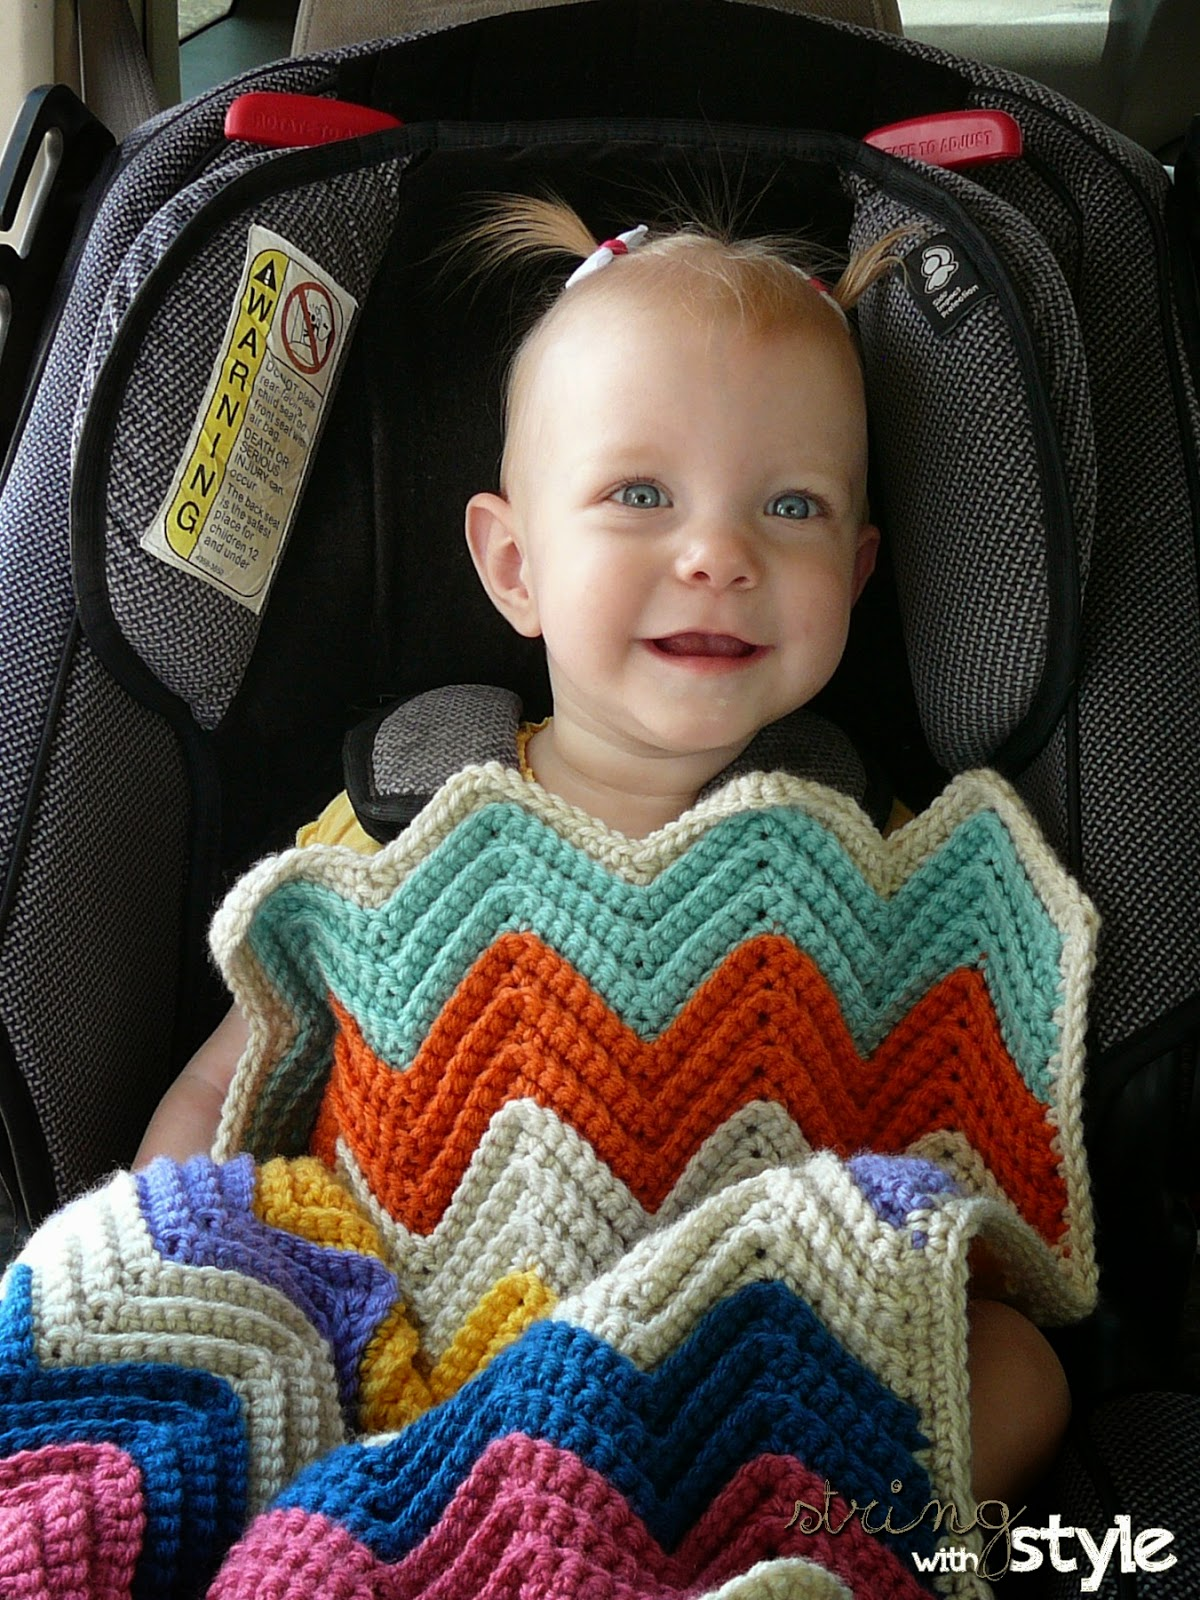 String With Style: Bobble Car Seat Blanket